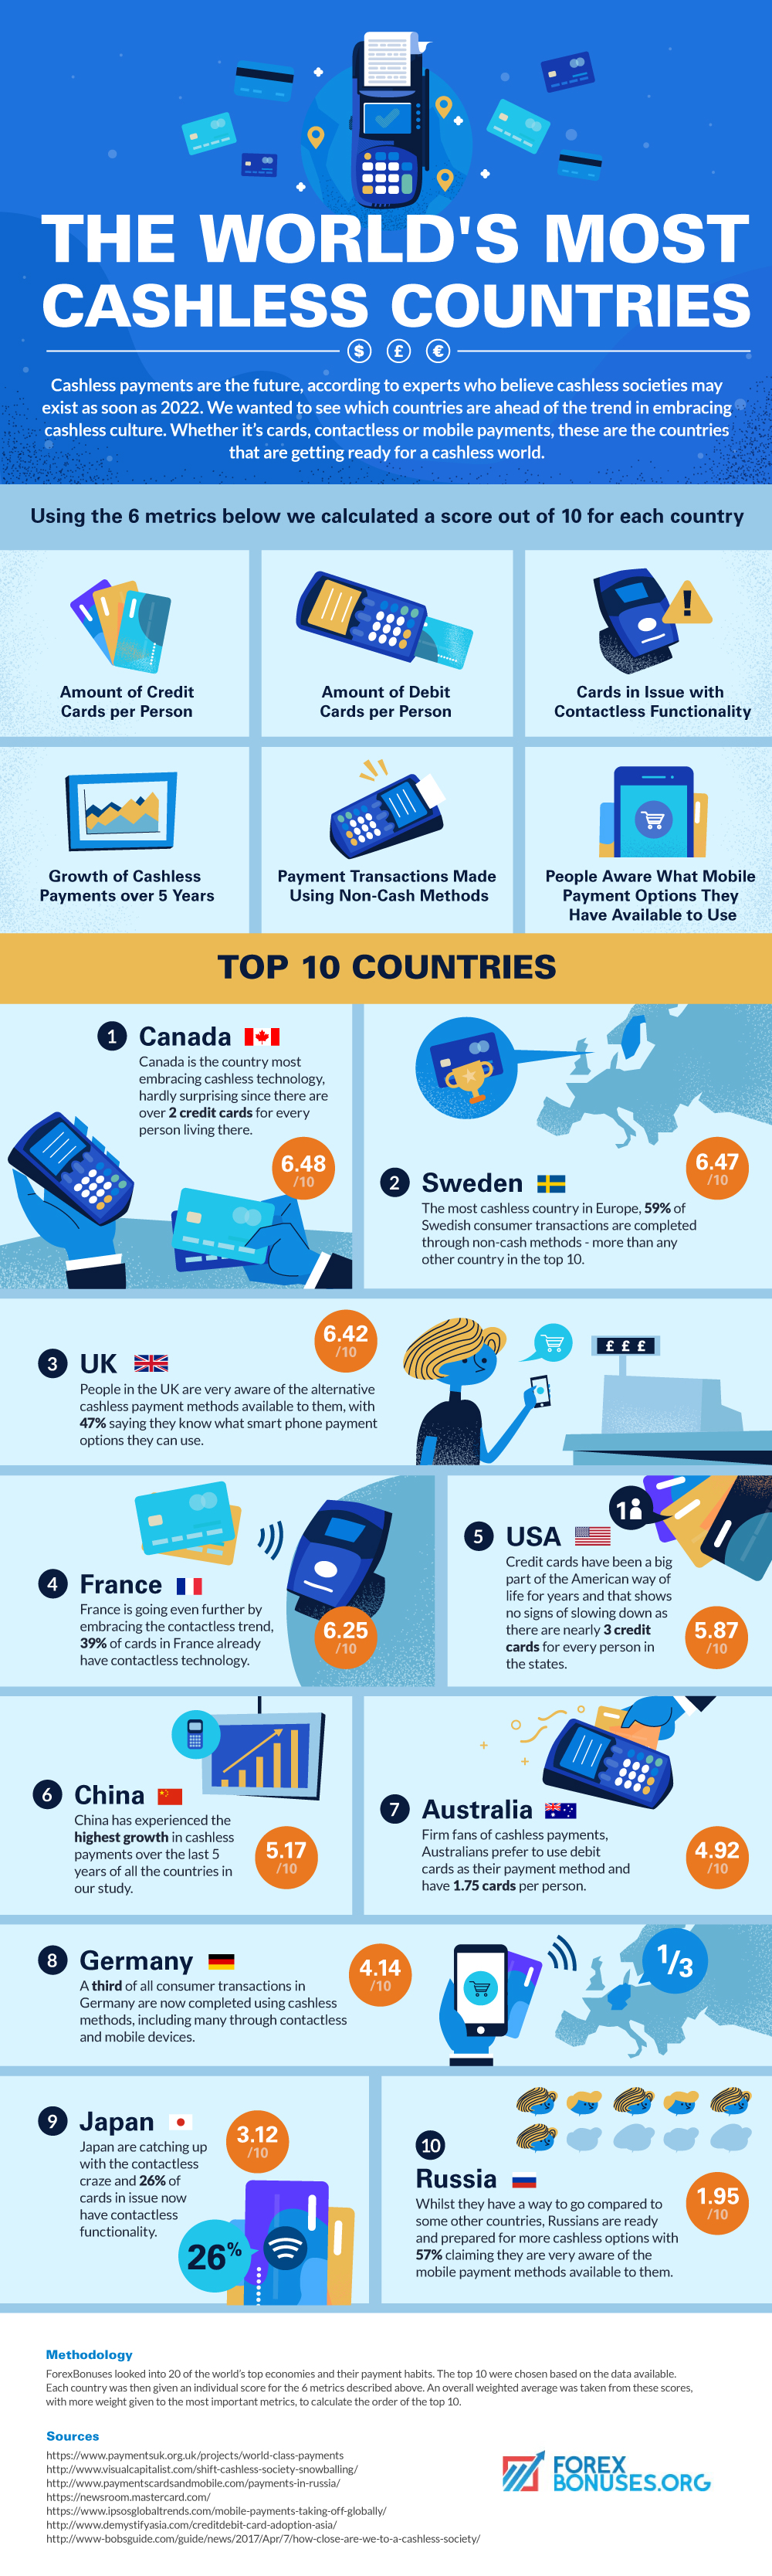 The World's most cashless countries - Infographic